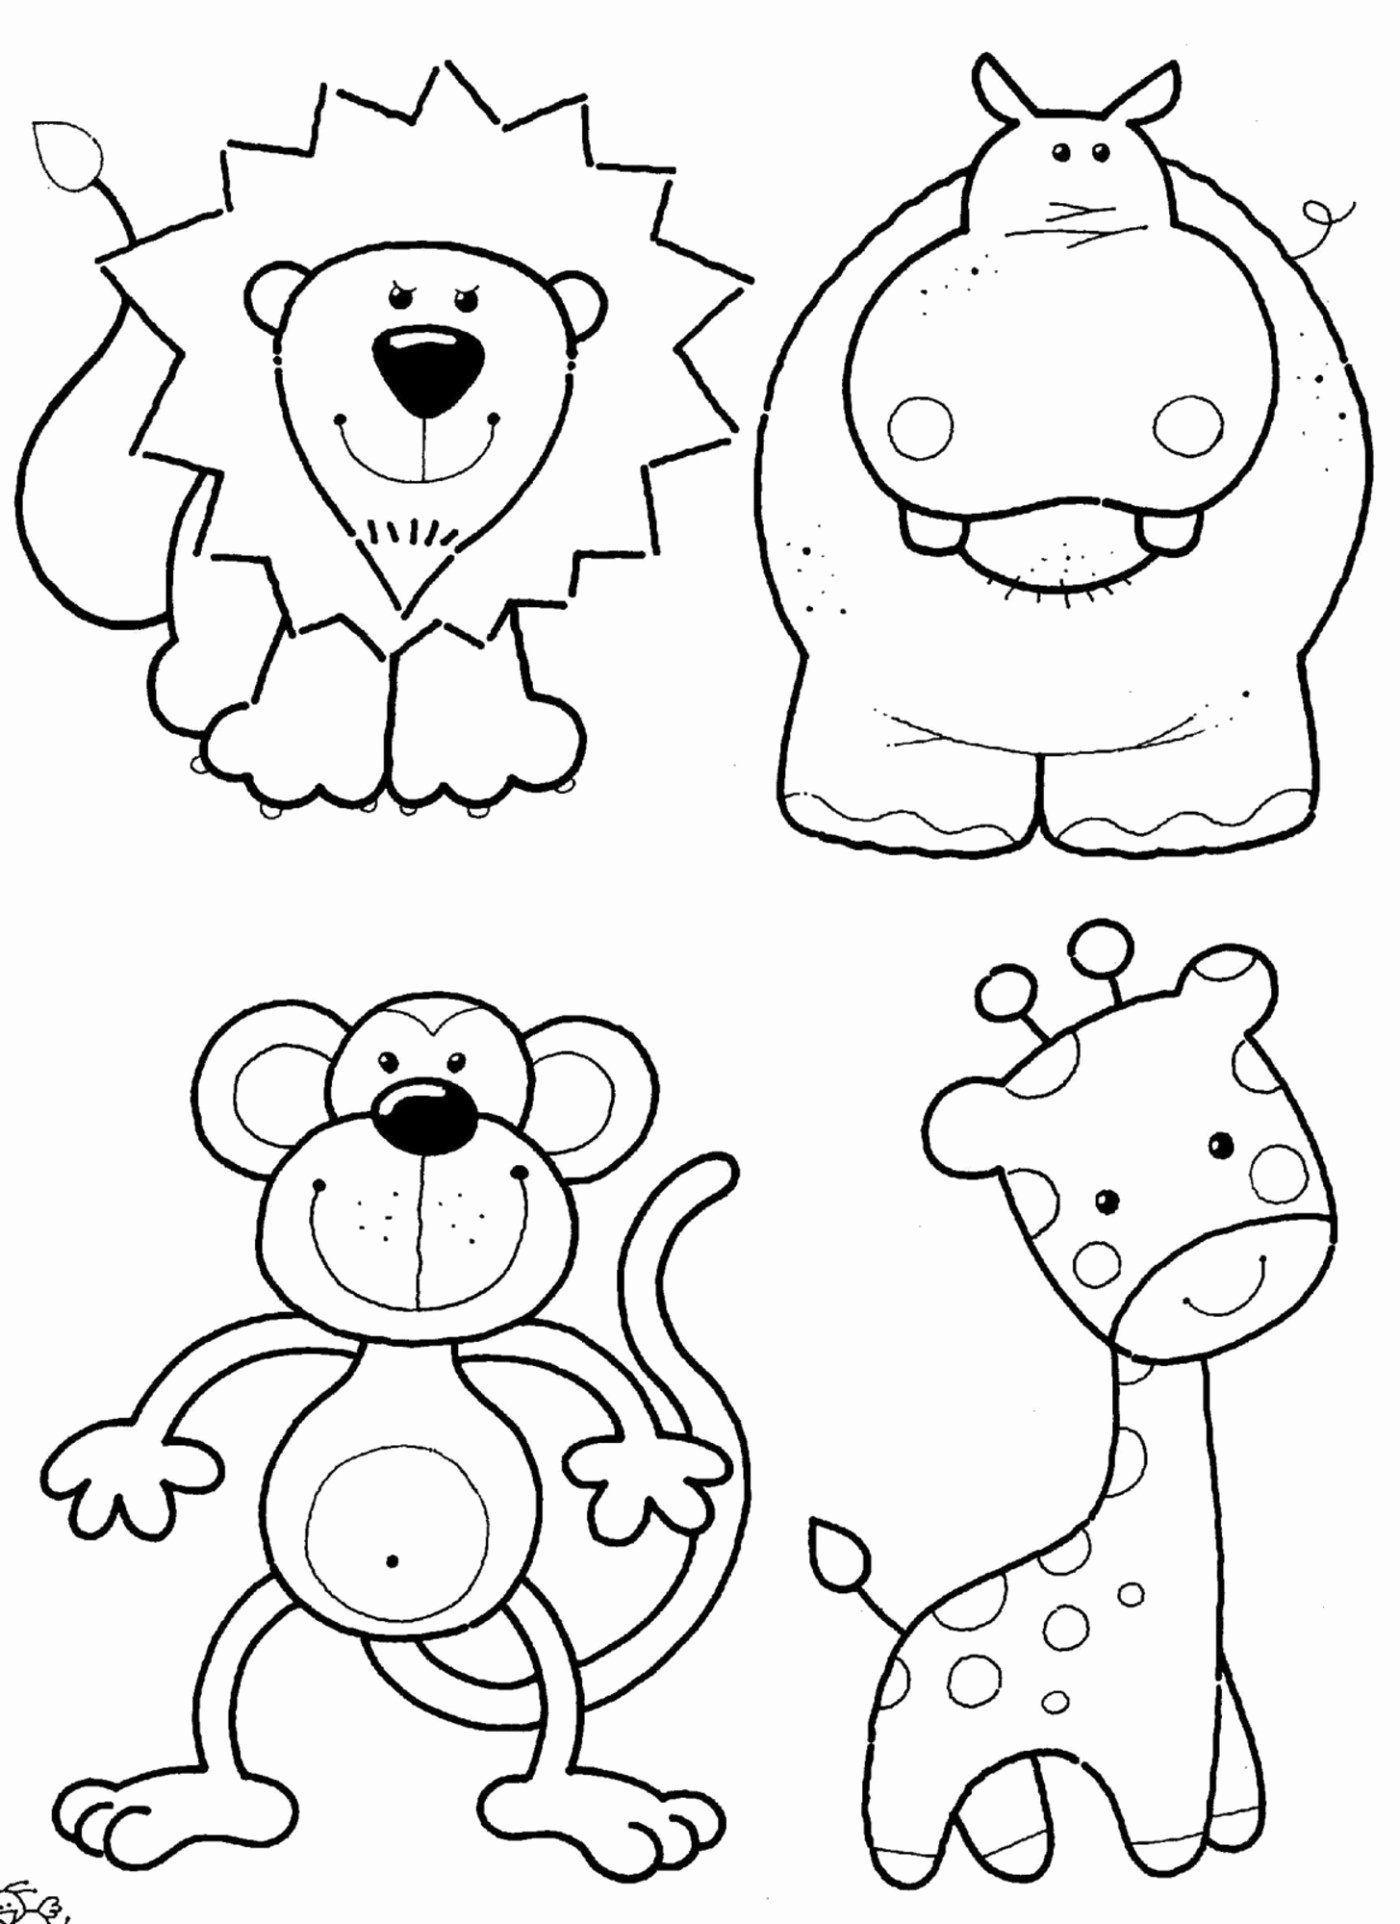 Animals Coloring Pages For Kids In